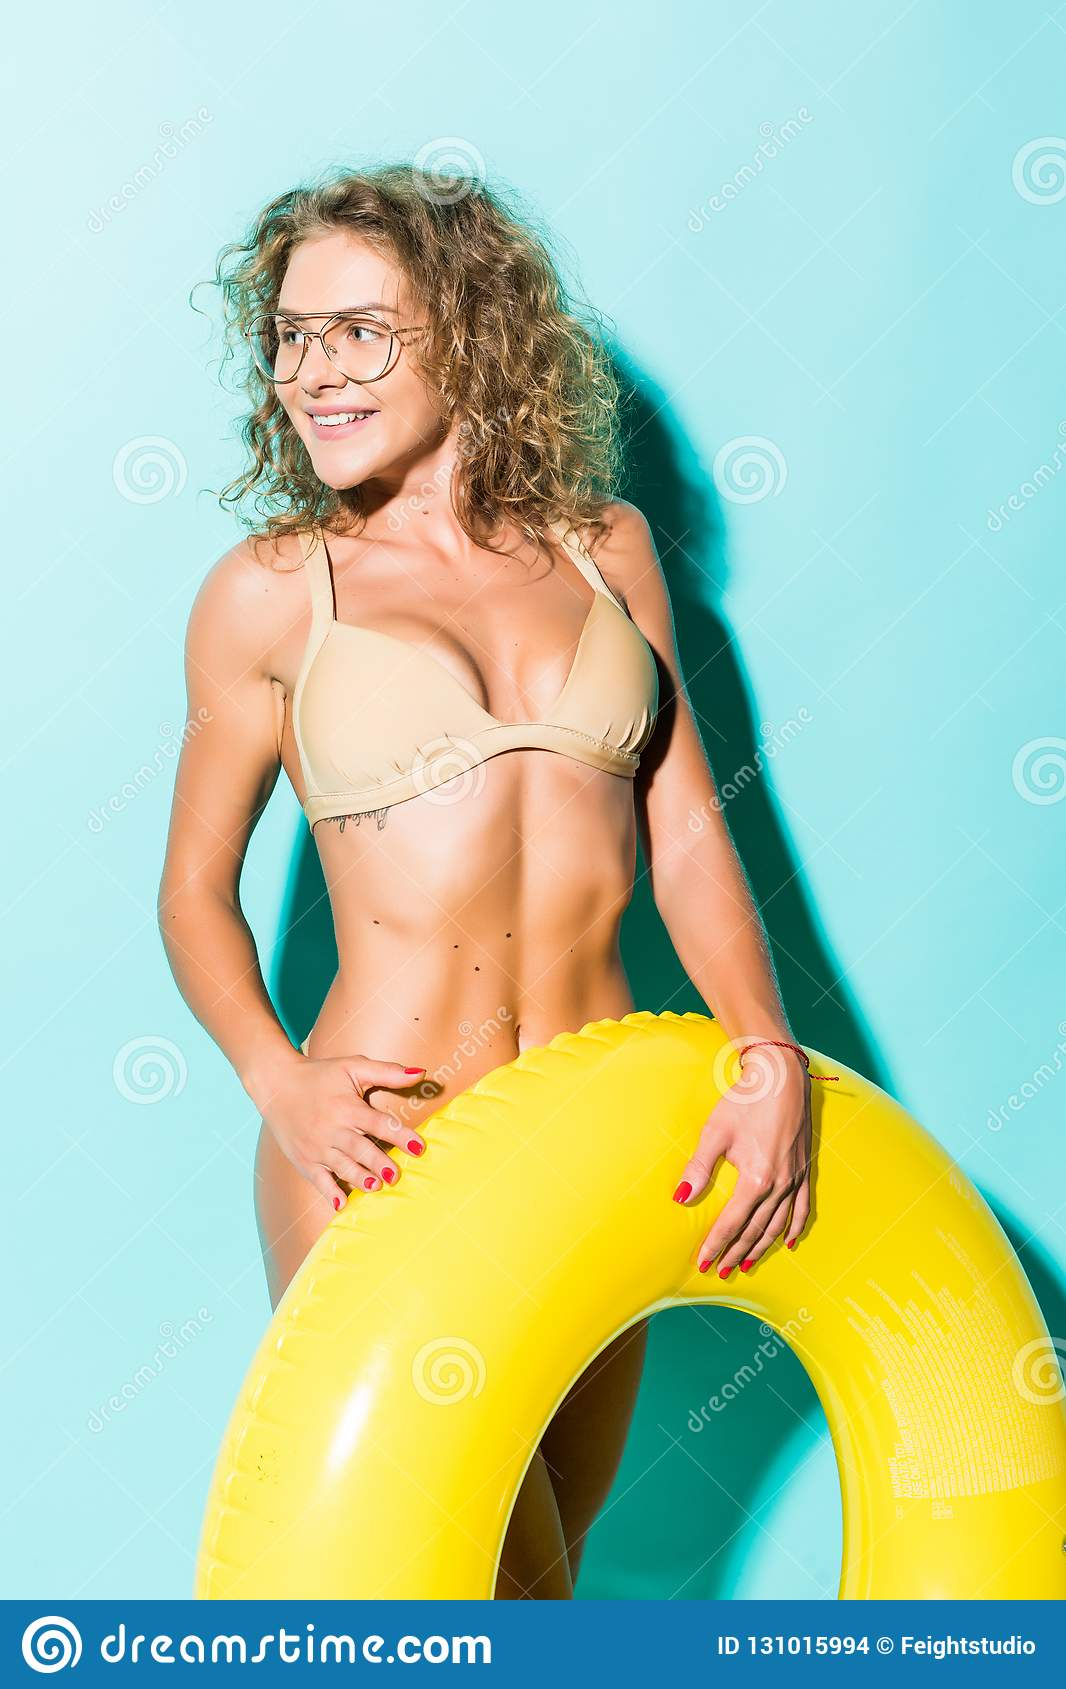 Portrait of beautiful young woman in bikini and glasses playing with inflatable yellow float isolated on blue background